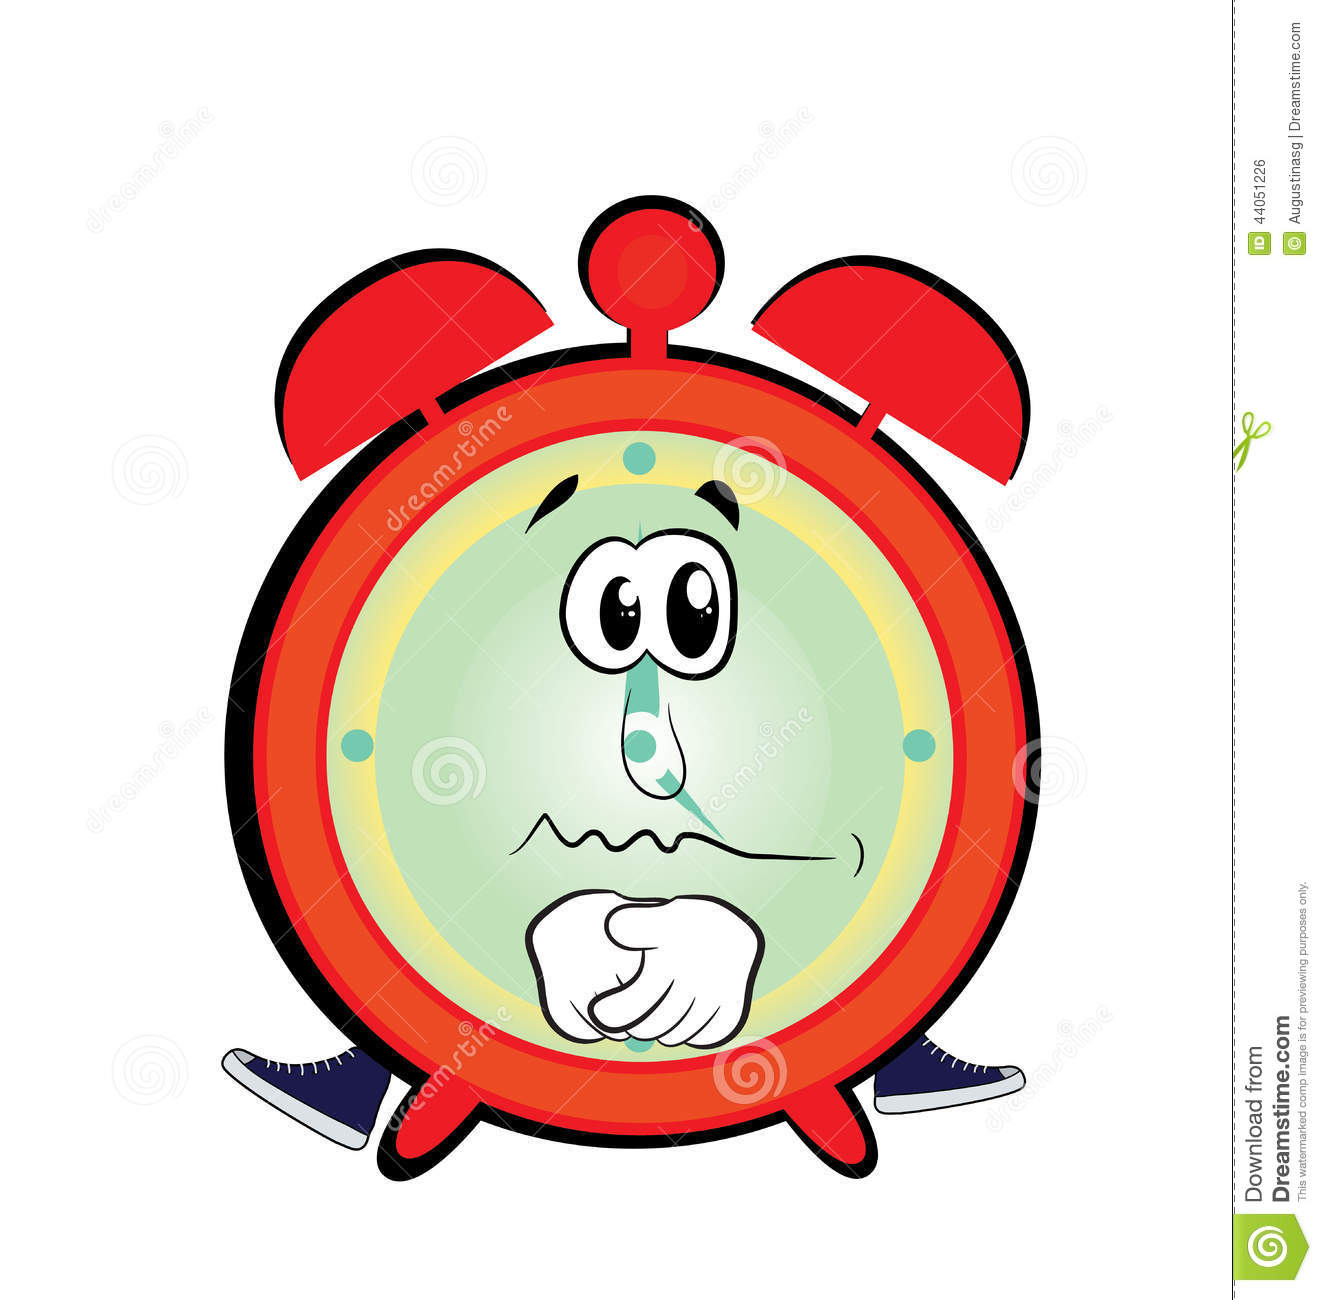 Sad Alarm Clock Cartoon Stock Illustration - Image: 44051226